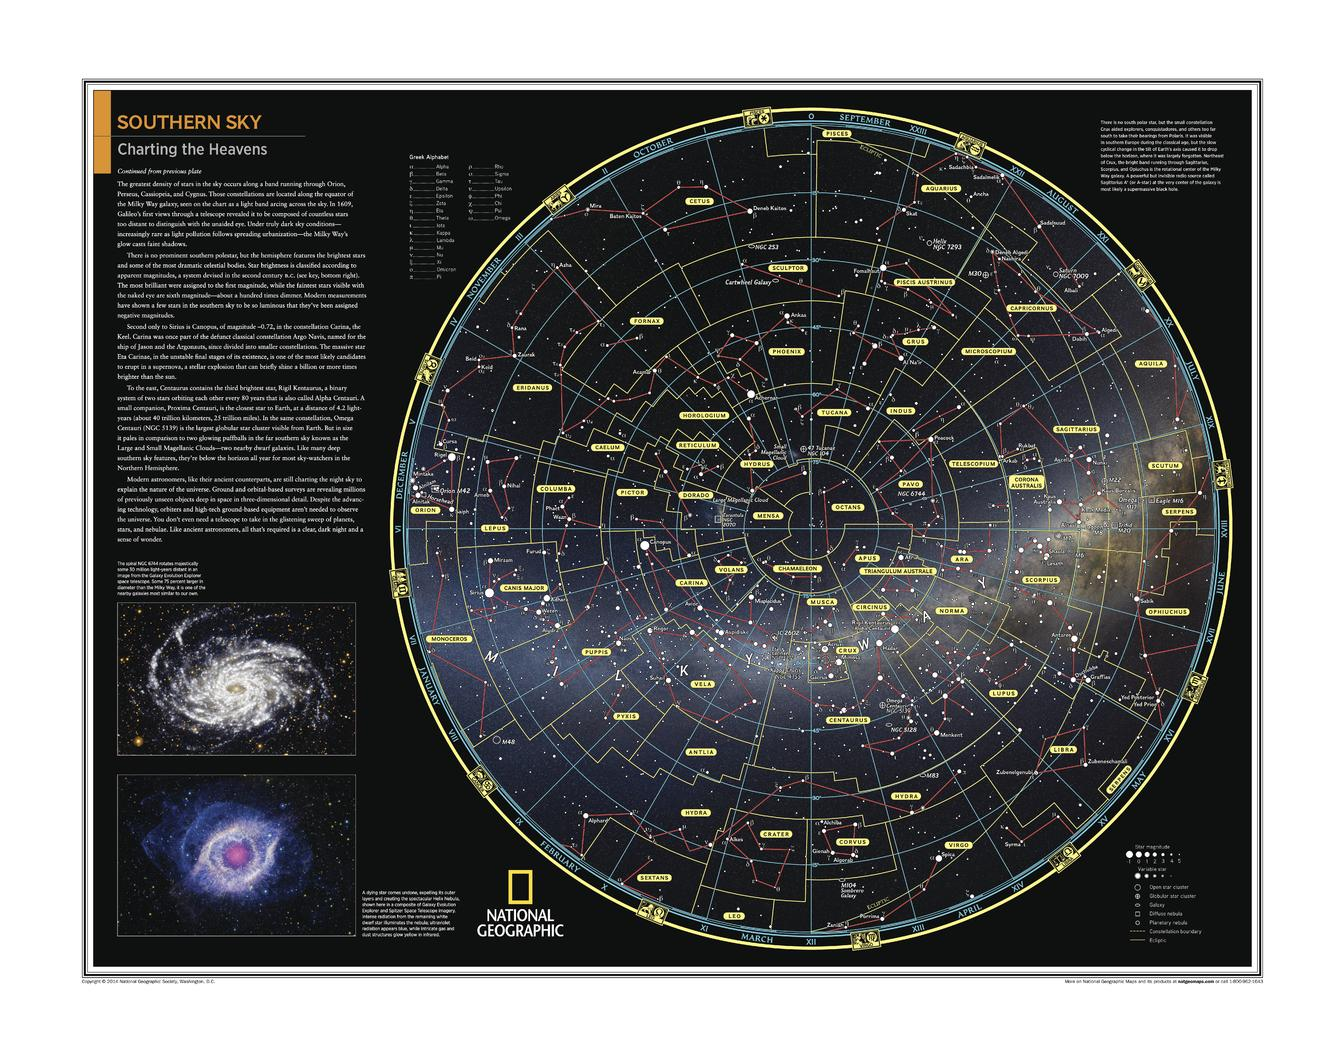 Southern Sky: Charting the Heavens